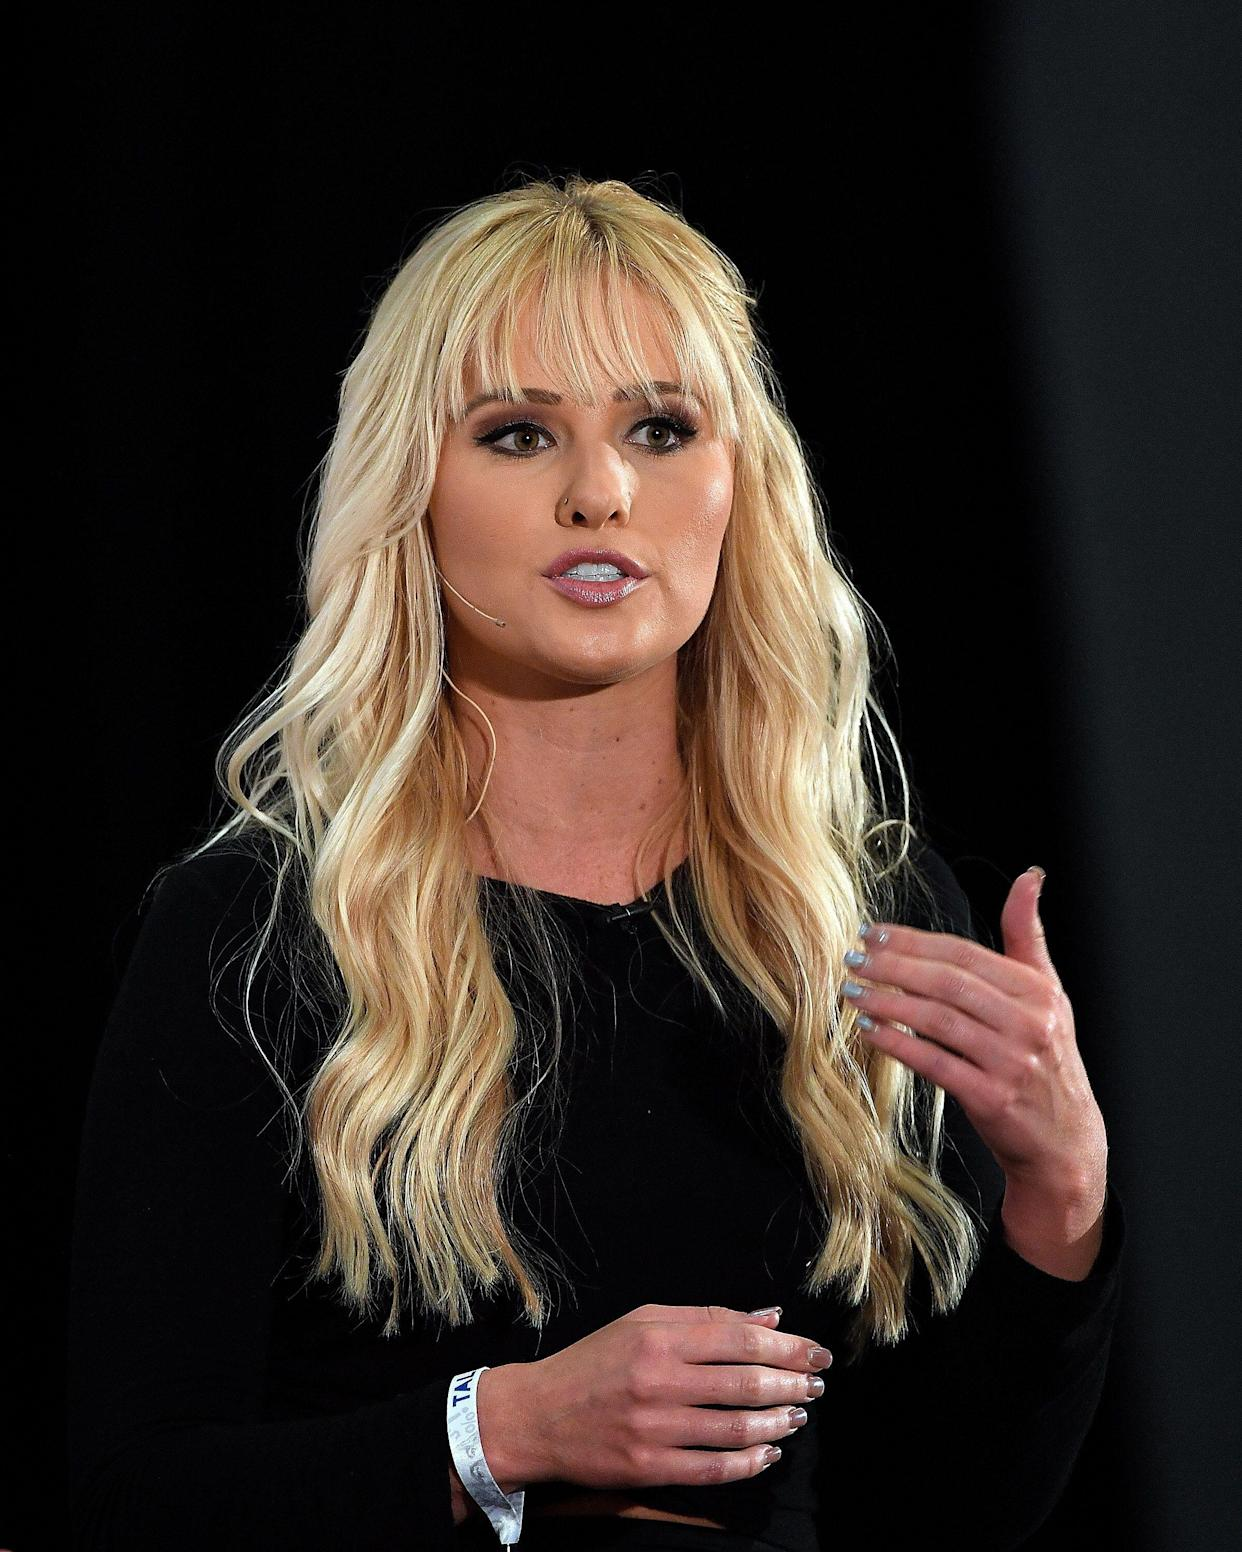 Tomi Lahren says Alabama's abortion ban 'too restrictive'